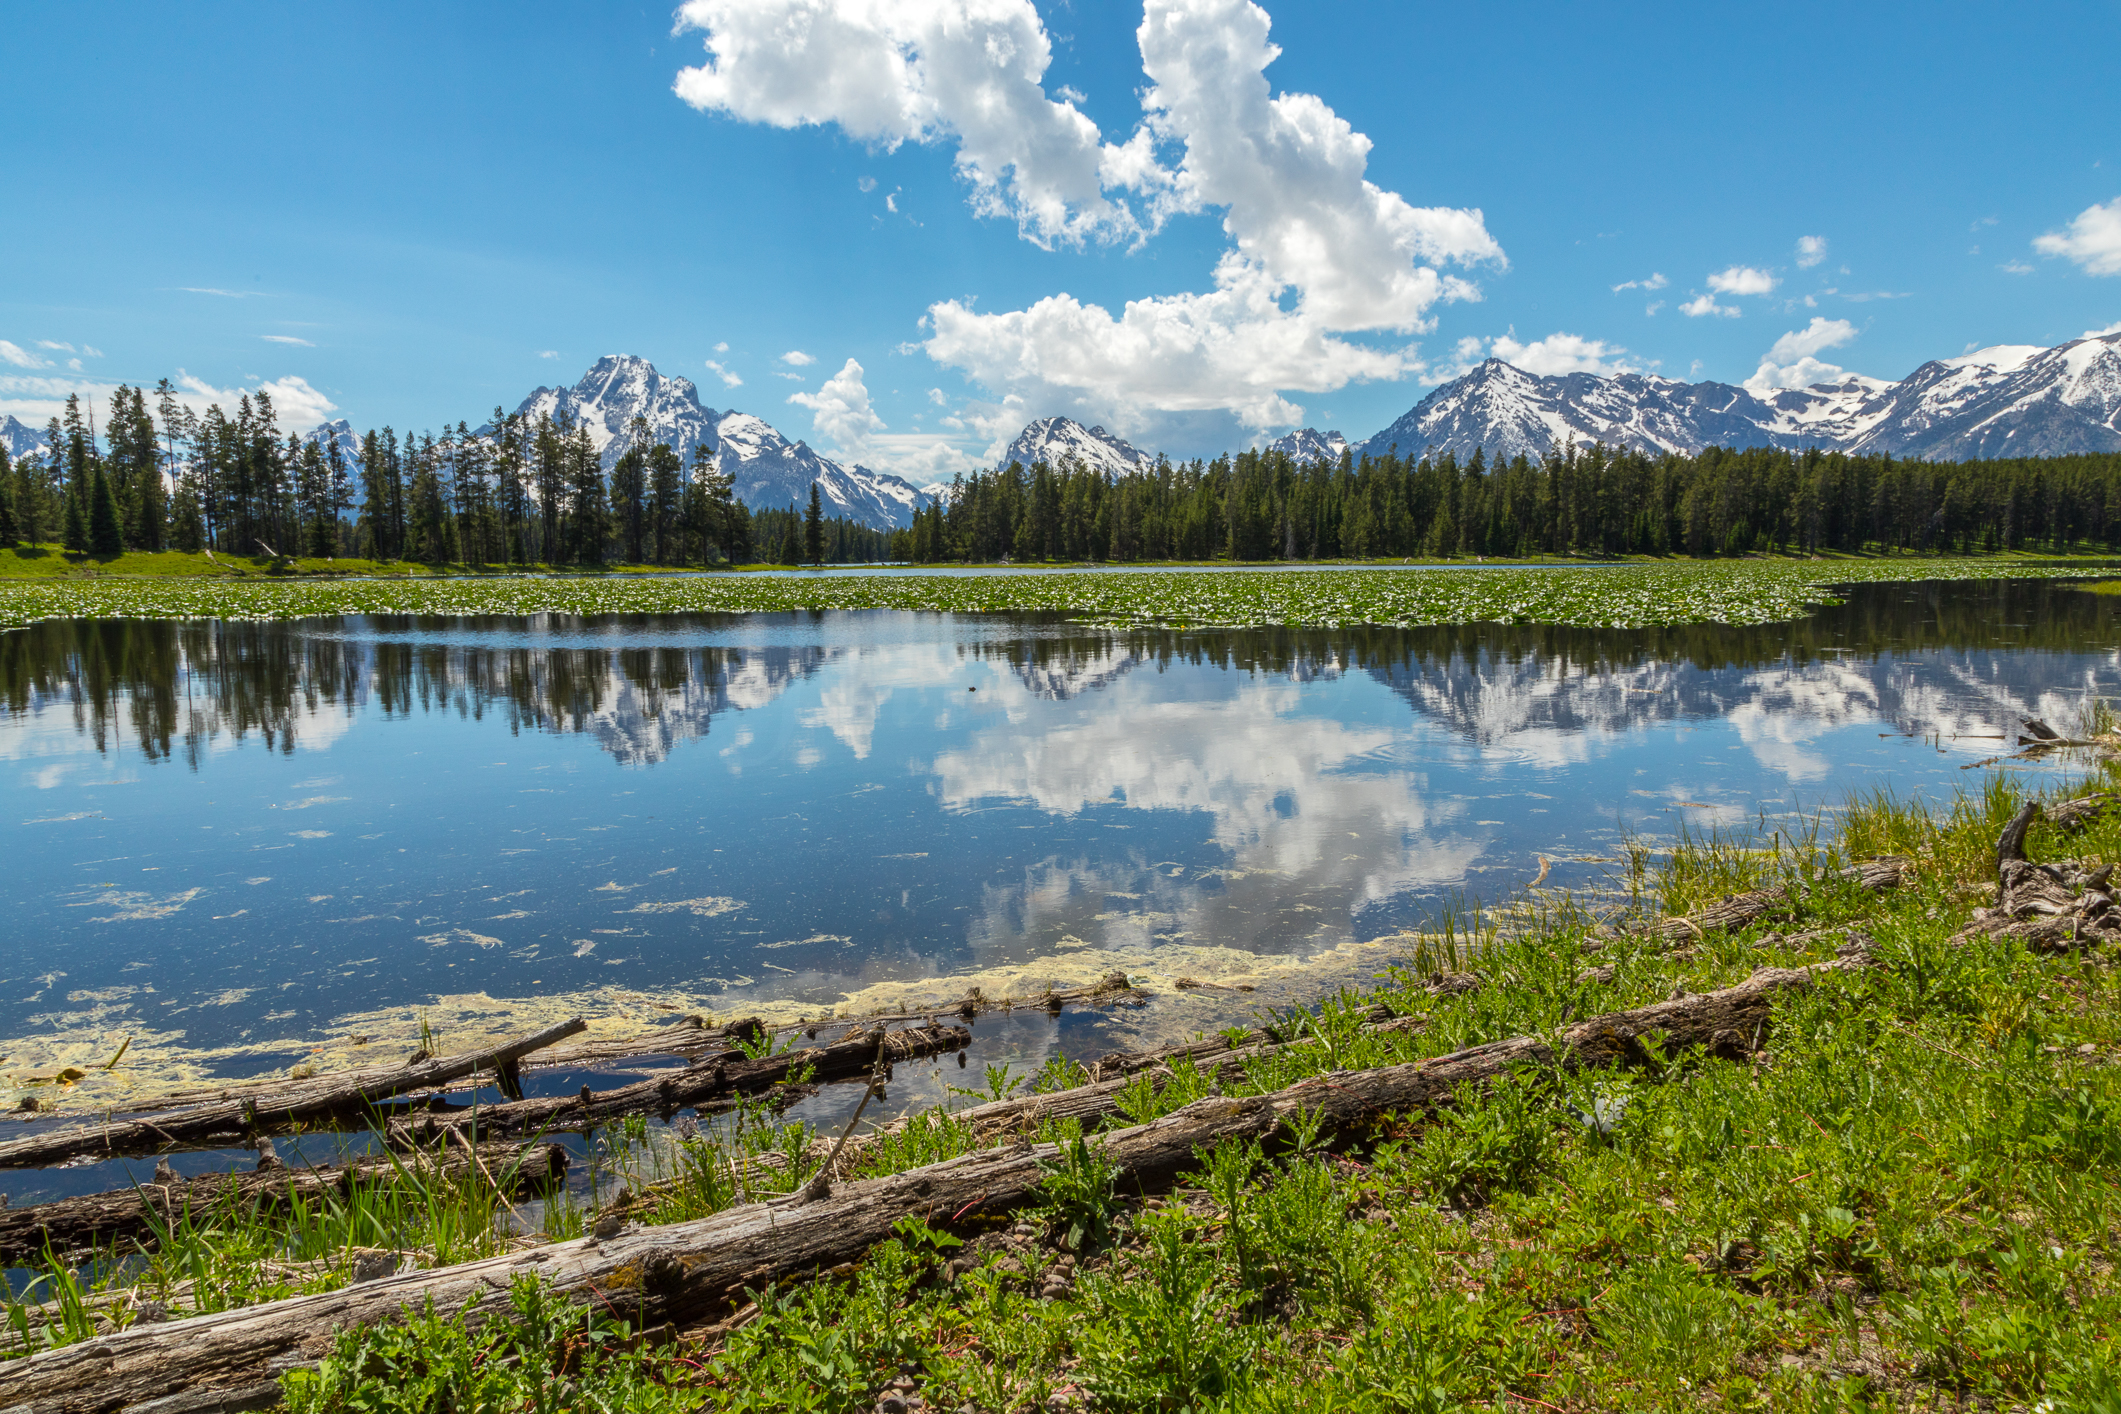 Colter Bay, Image # 3239